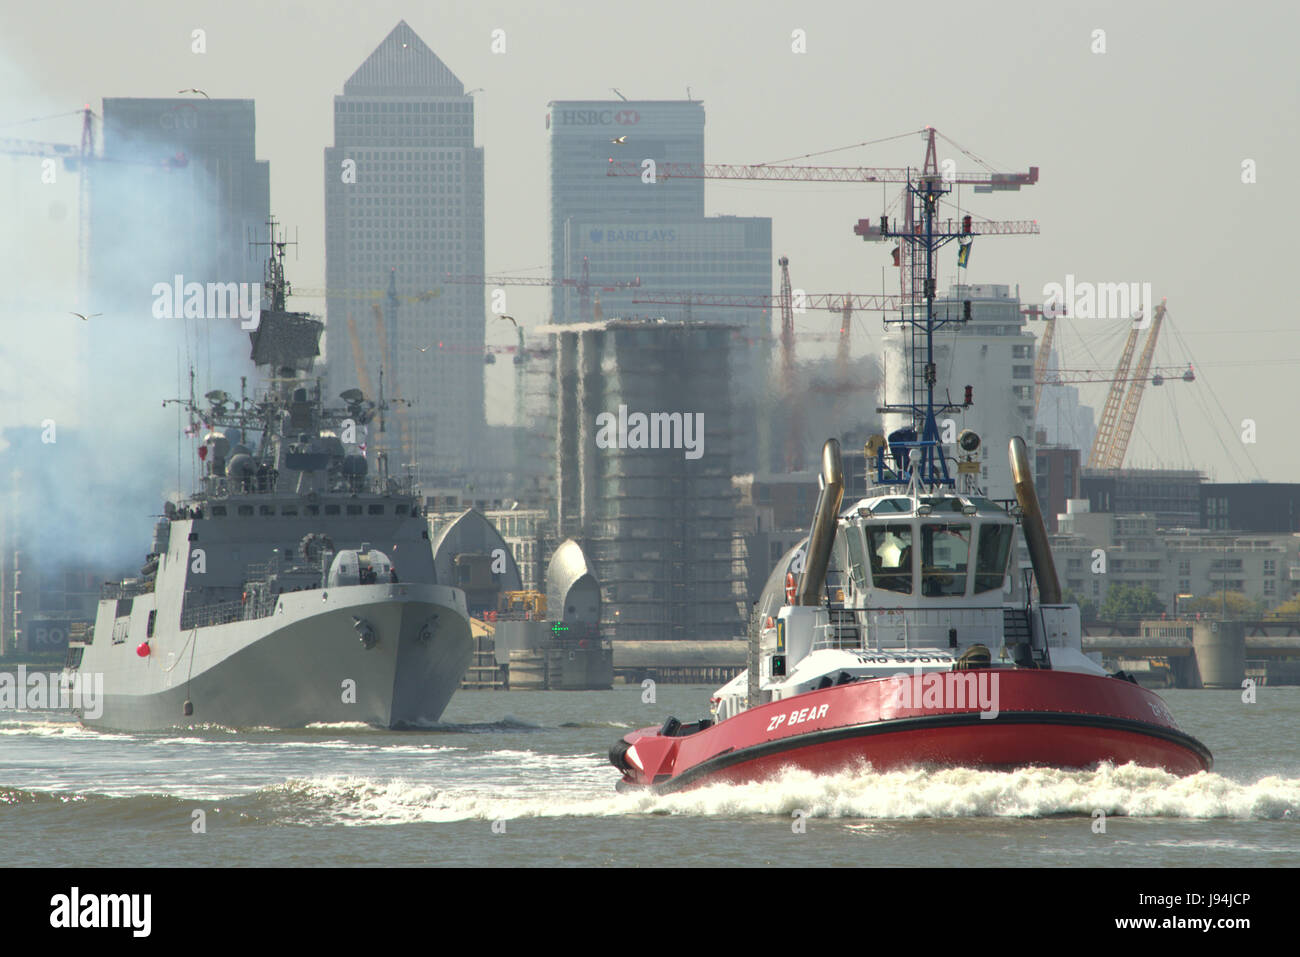 Indian Naval Vessel INS Tarkash F50 heads down the river Thames after paying a goodwill visit to London - Stock Image